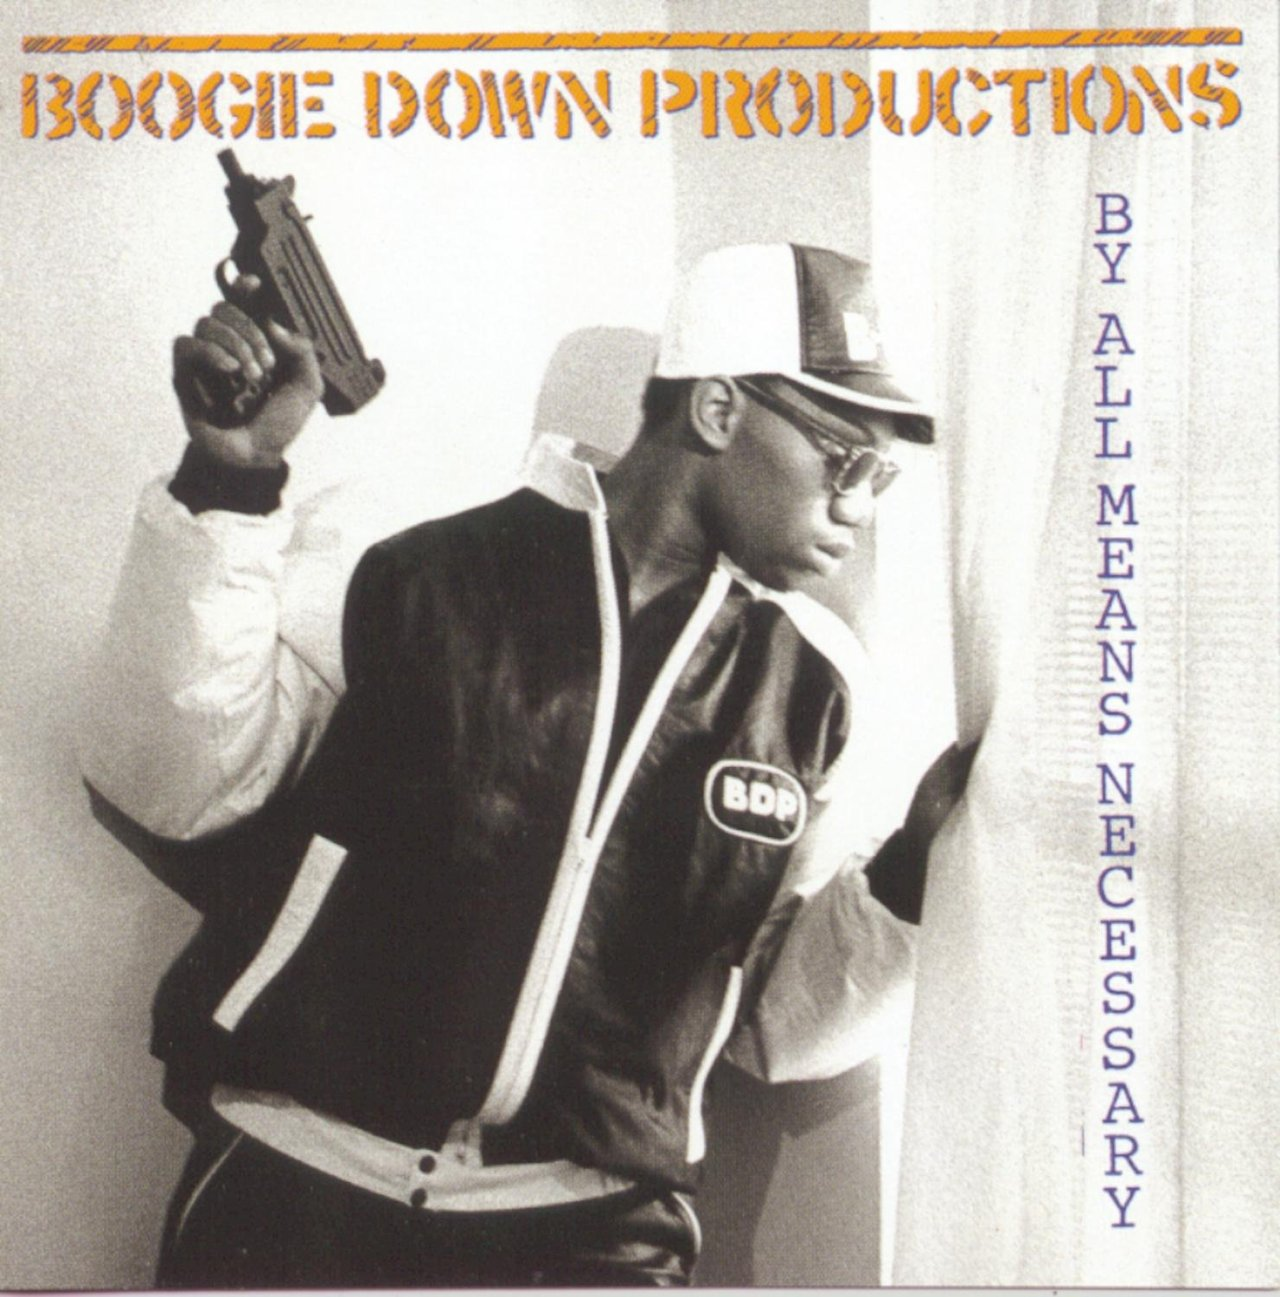 Today in Hip-Hop History: Boogie Down Productions Released Their Second LP 'By All Means Necessary' 32 Years Ago